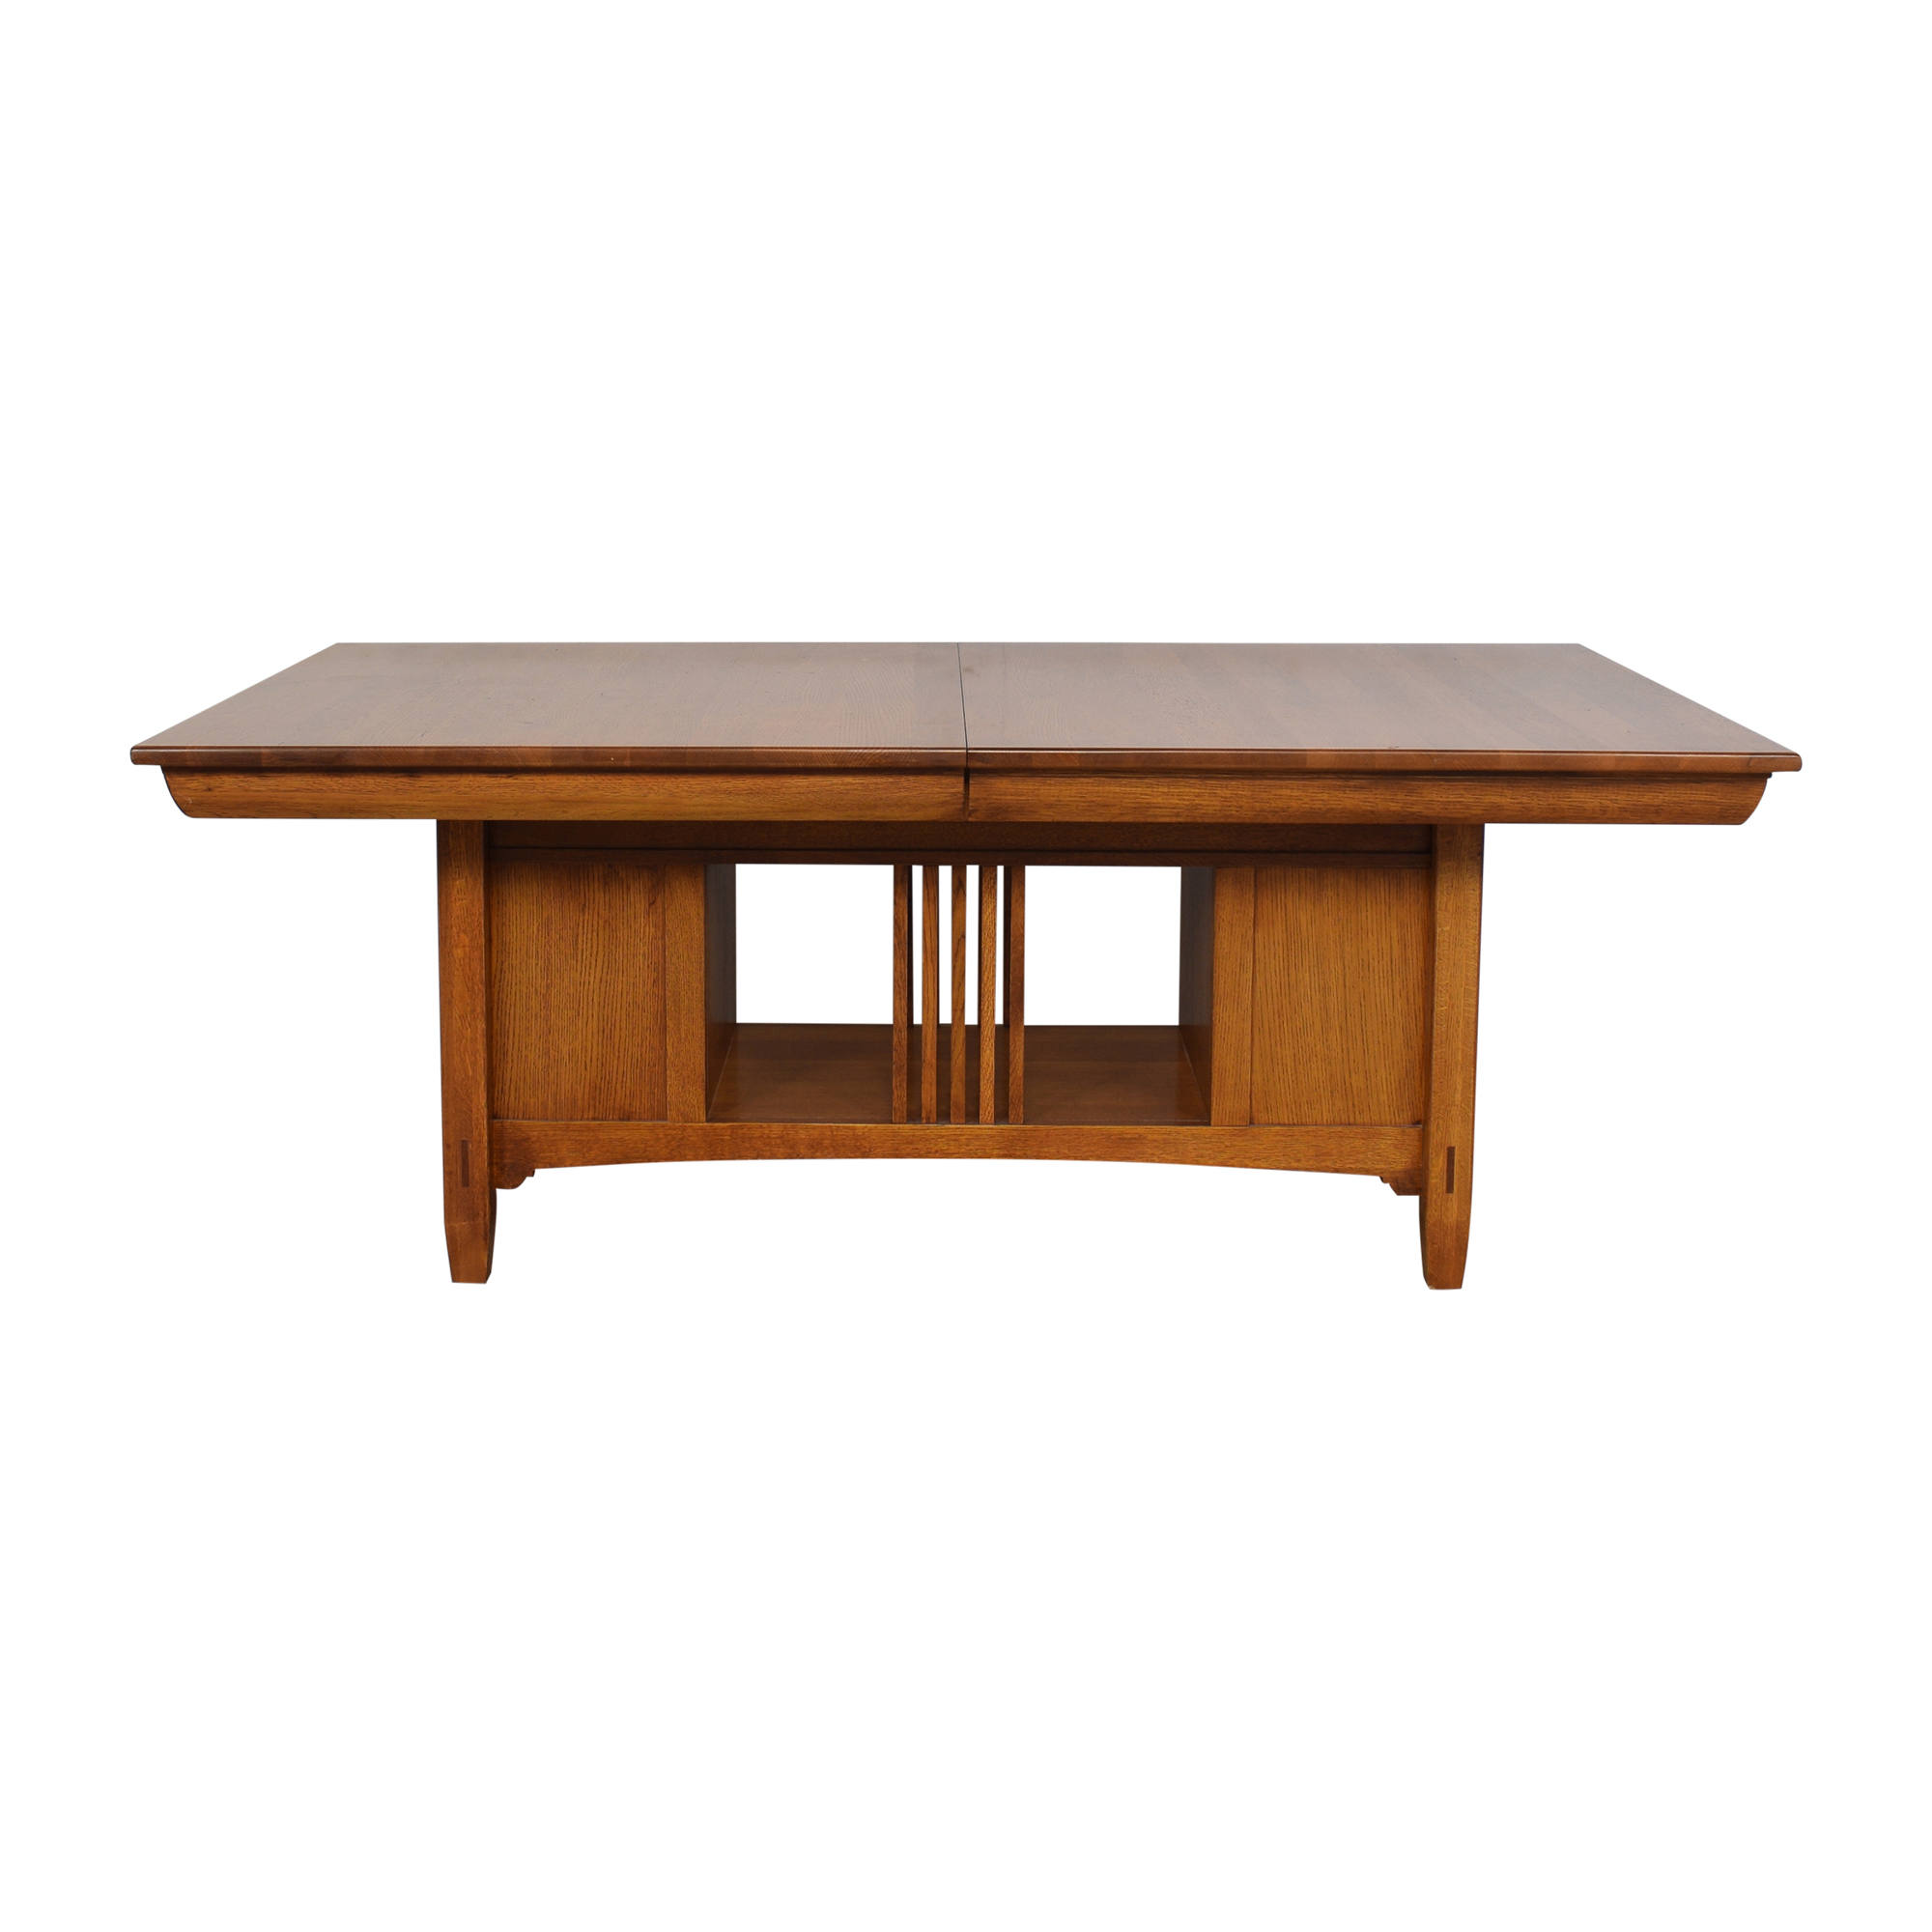 Lexington Furniture Lexington Bob Timberlake Arts & Crafts Collection Storage Dining Table ct